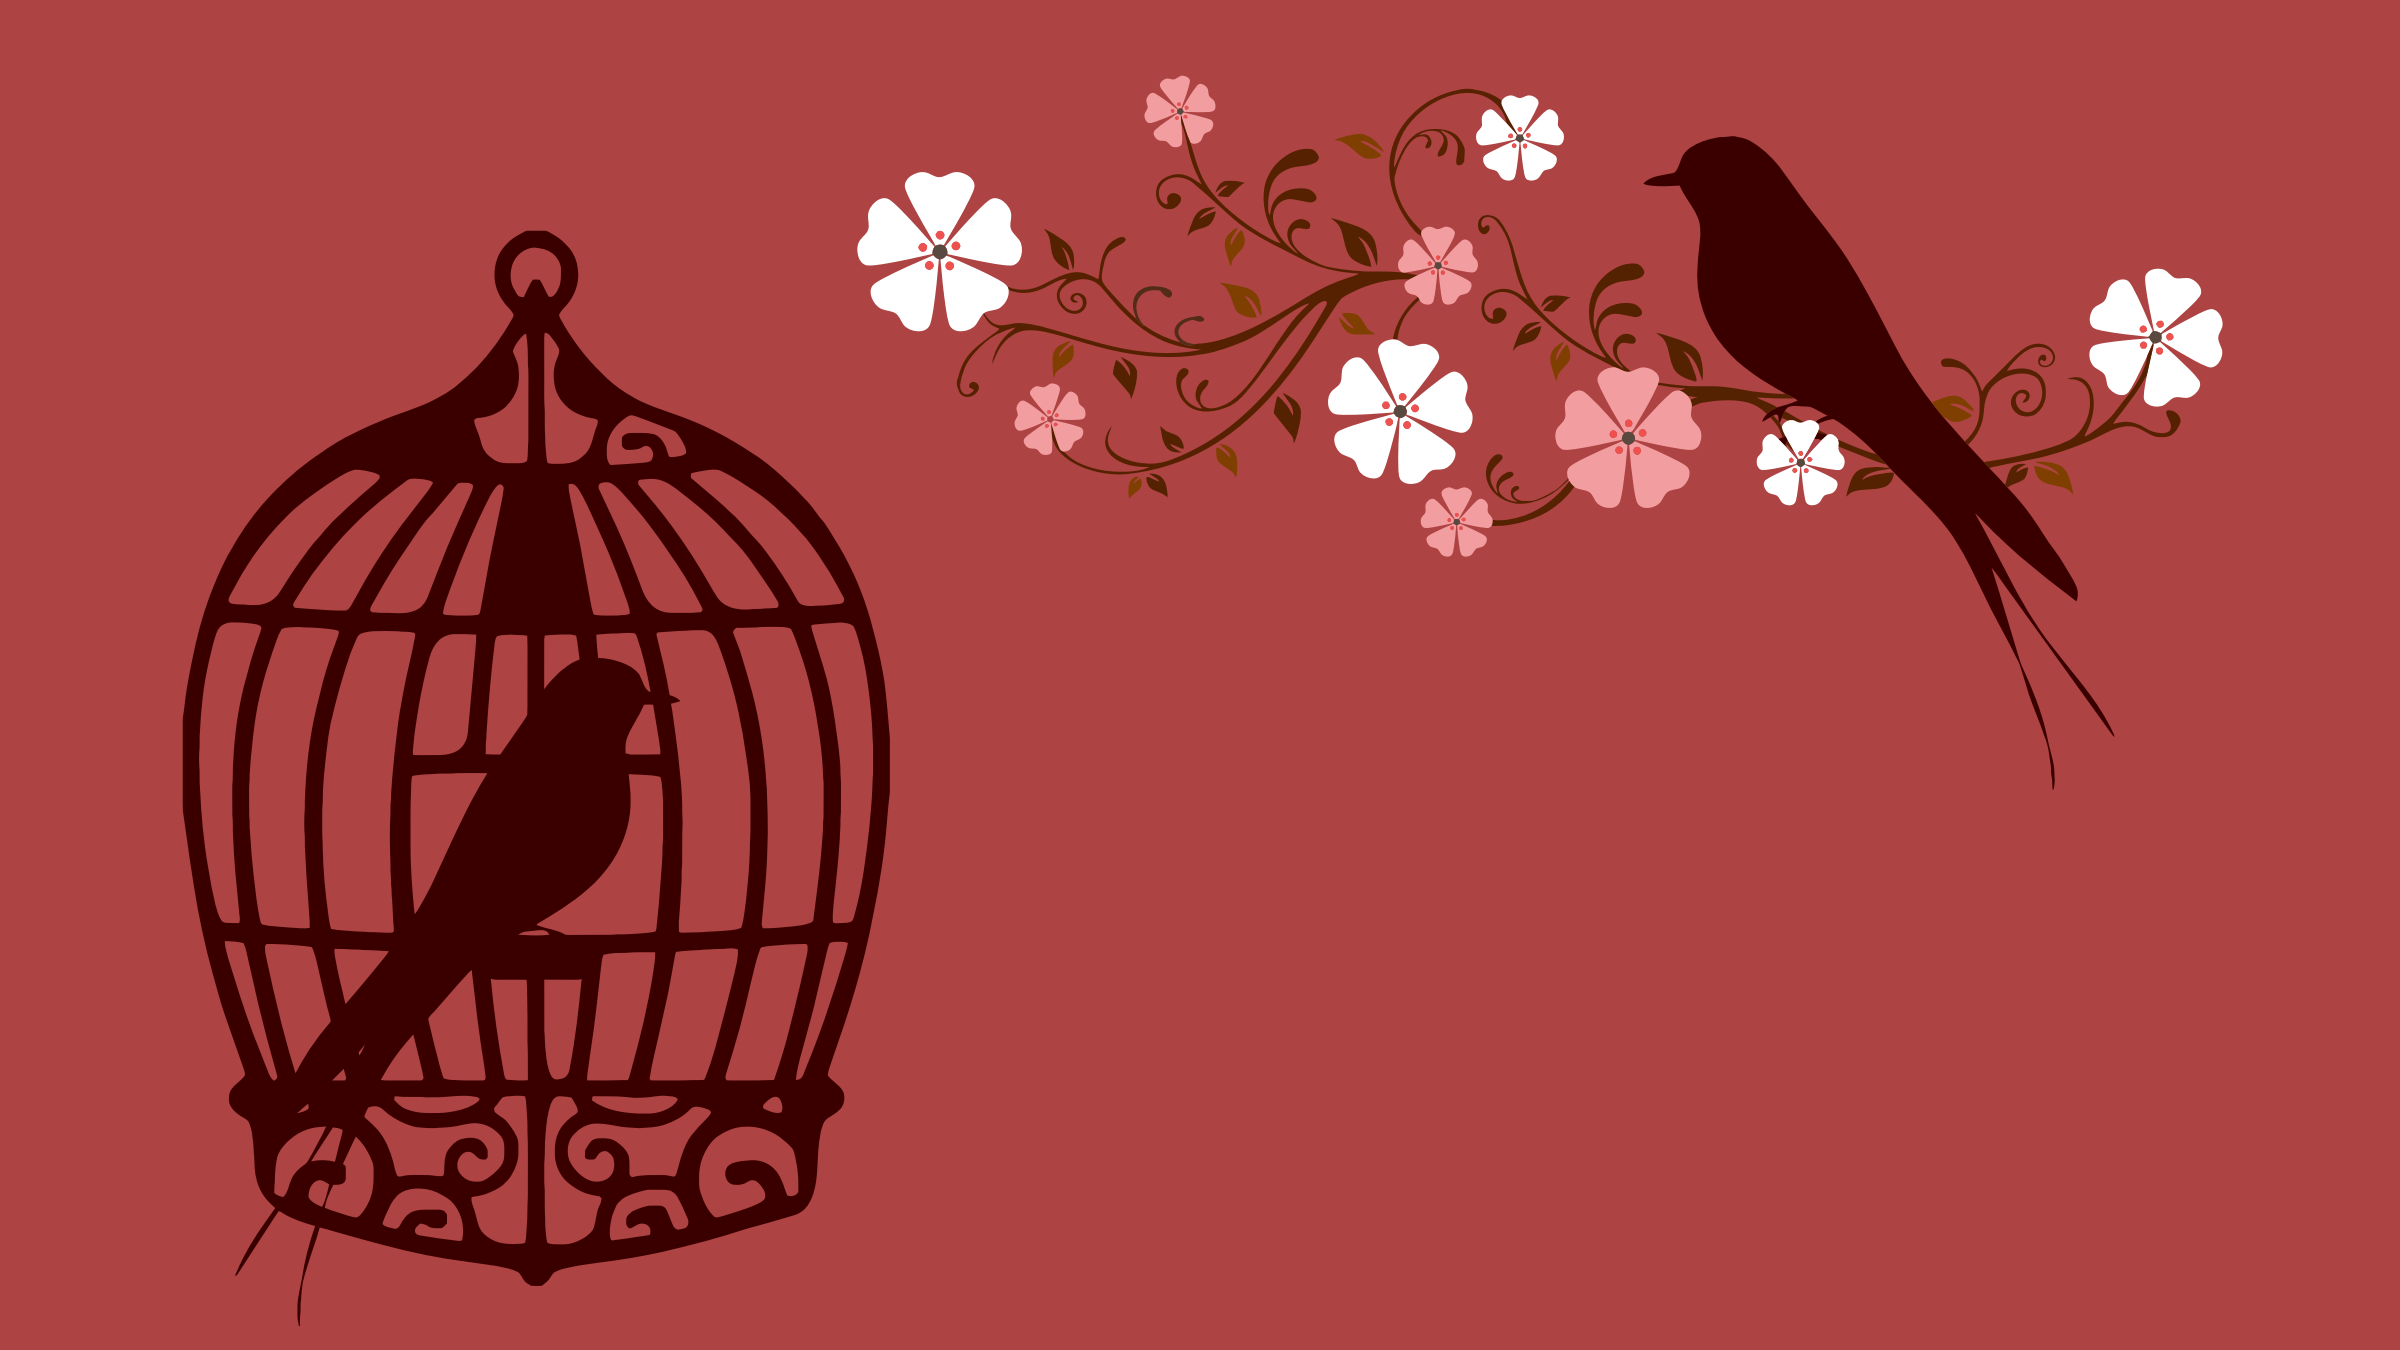 Floral Birds Silhouette by GDJ